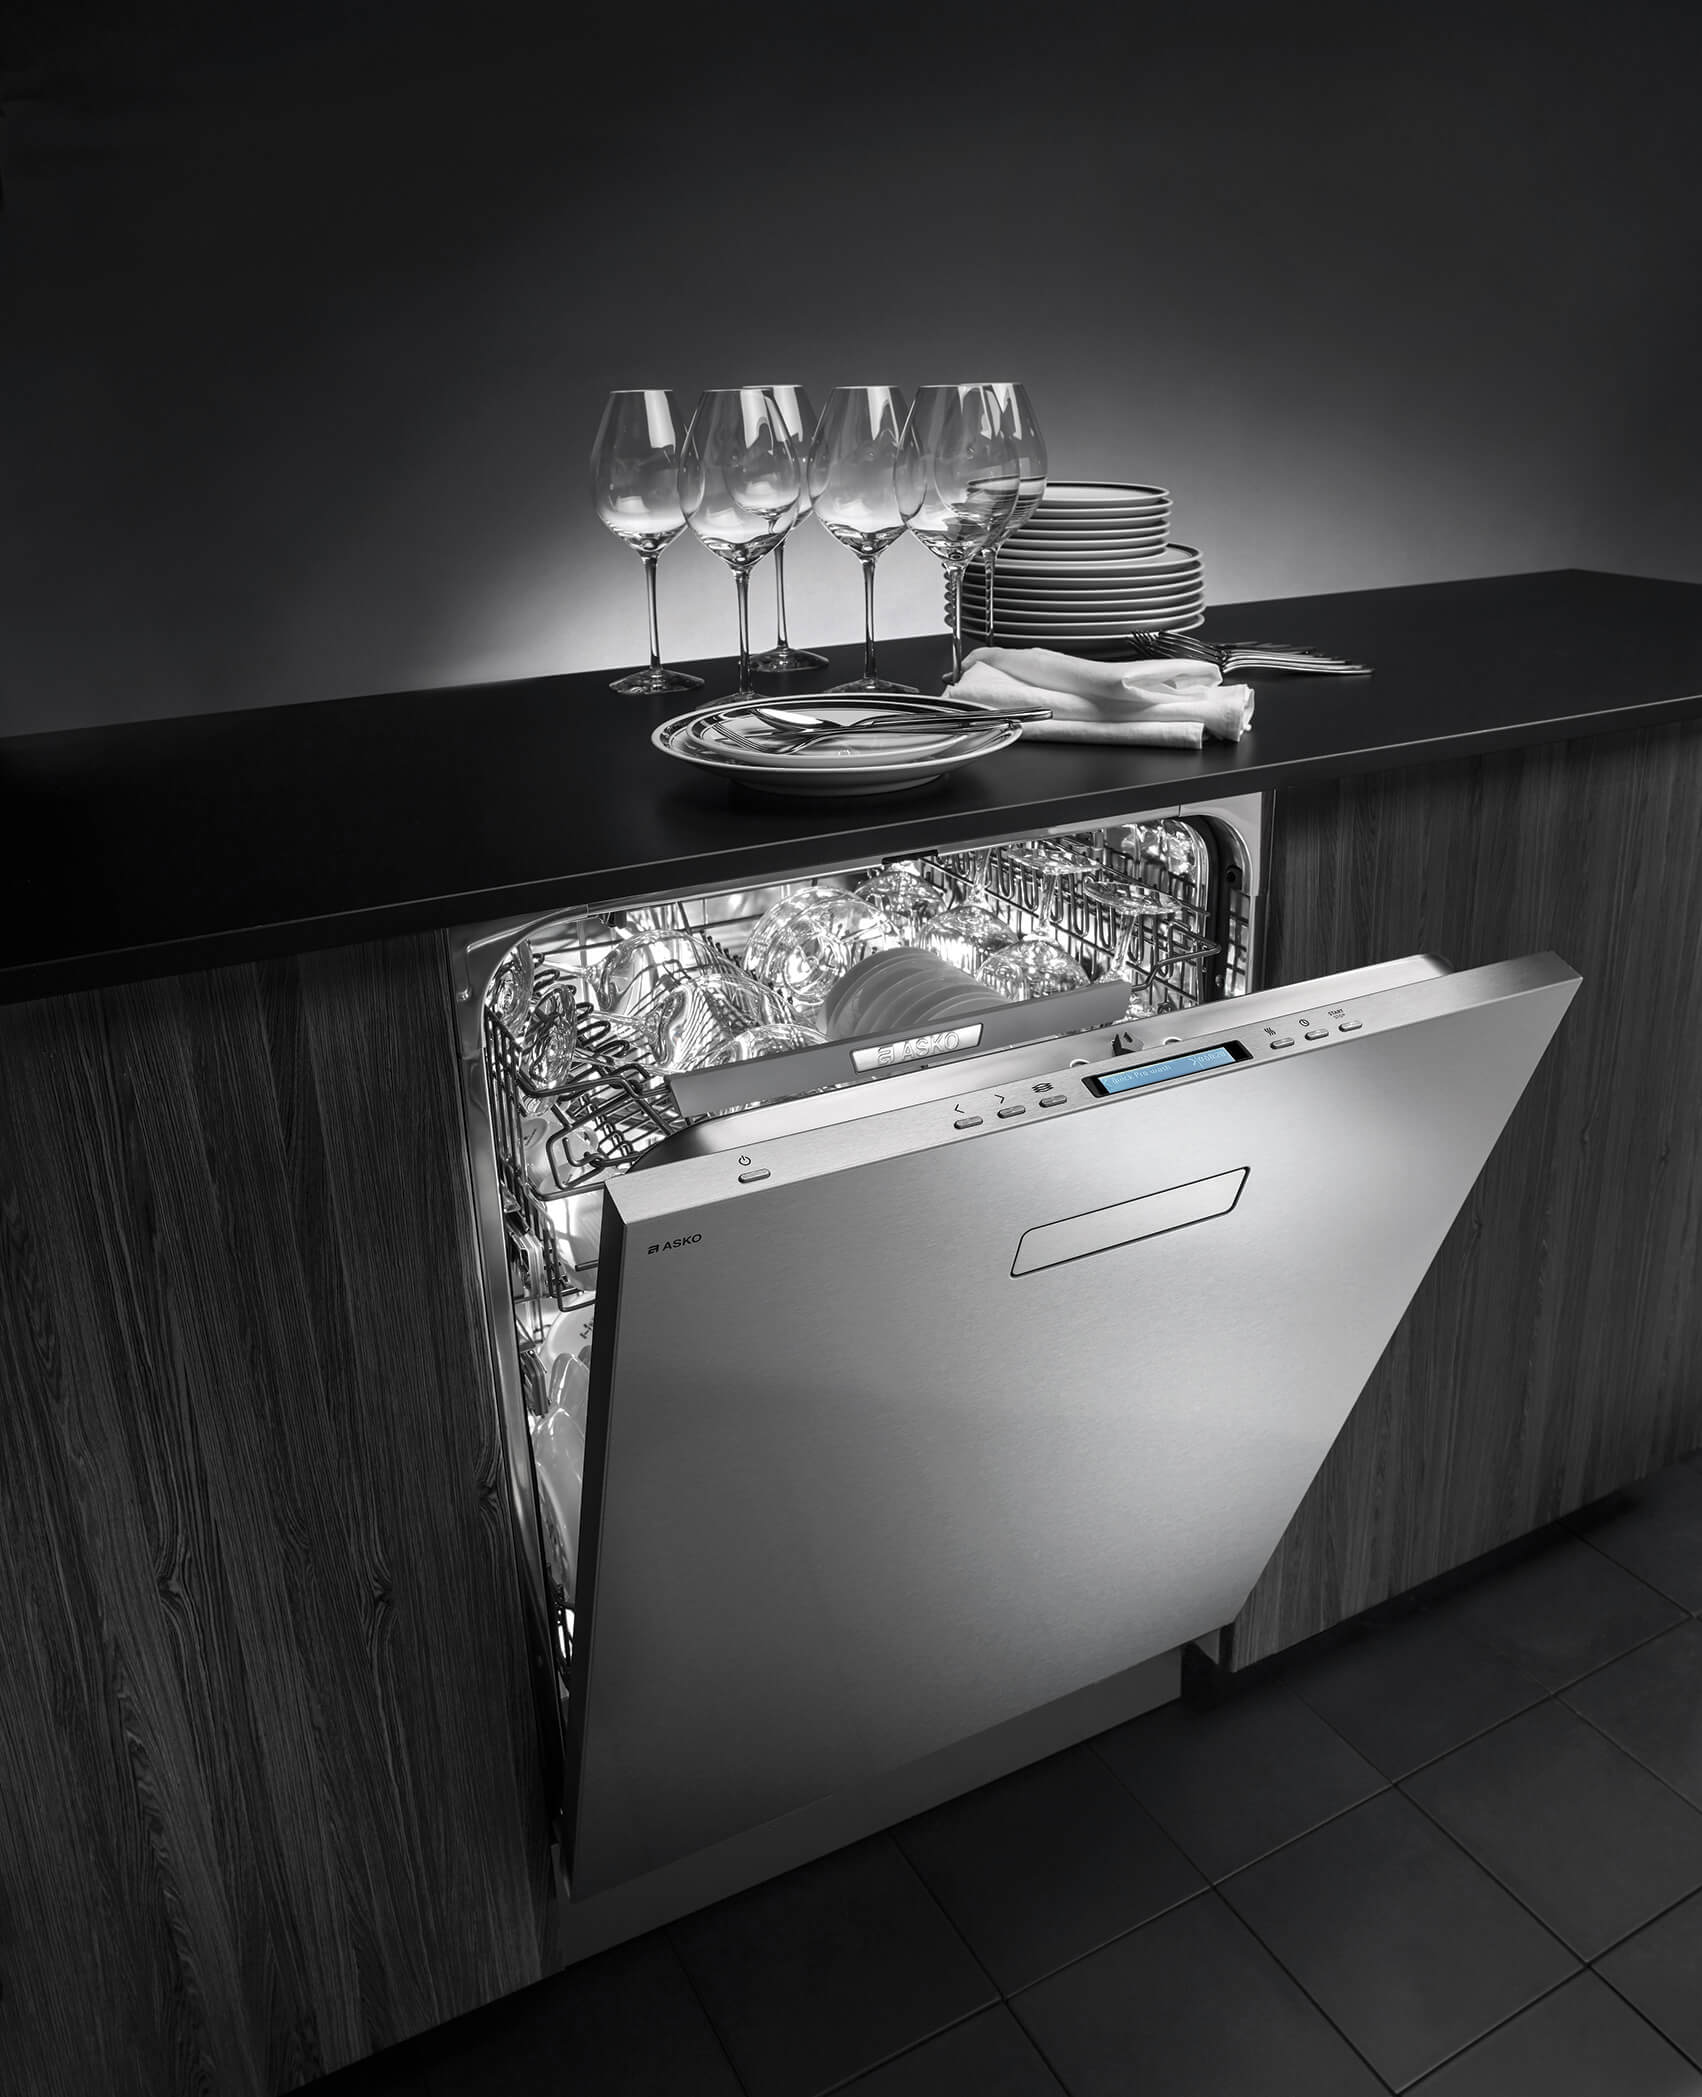 Lm Dishwasher